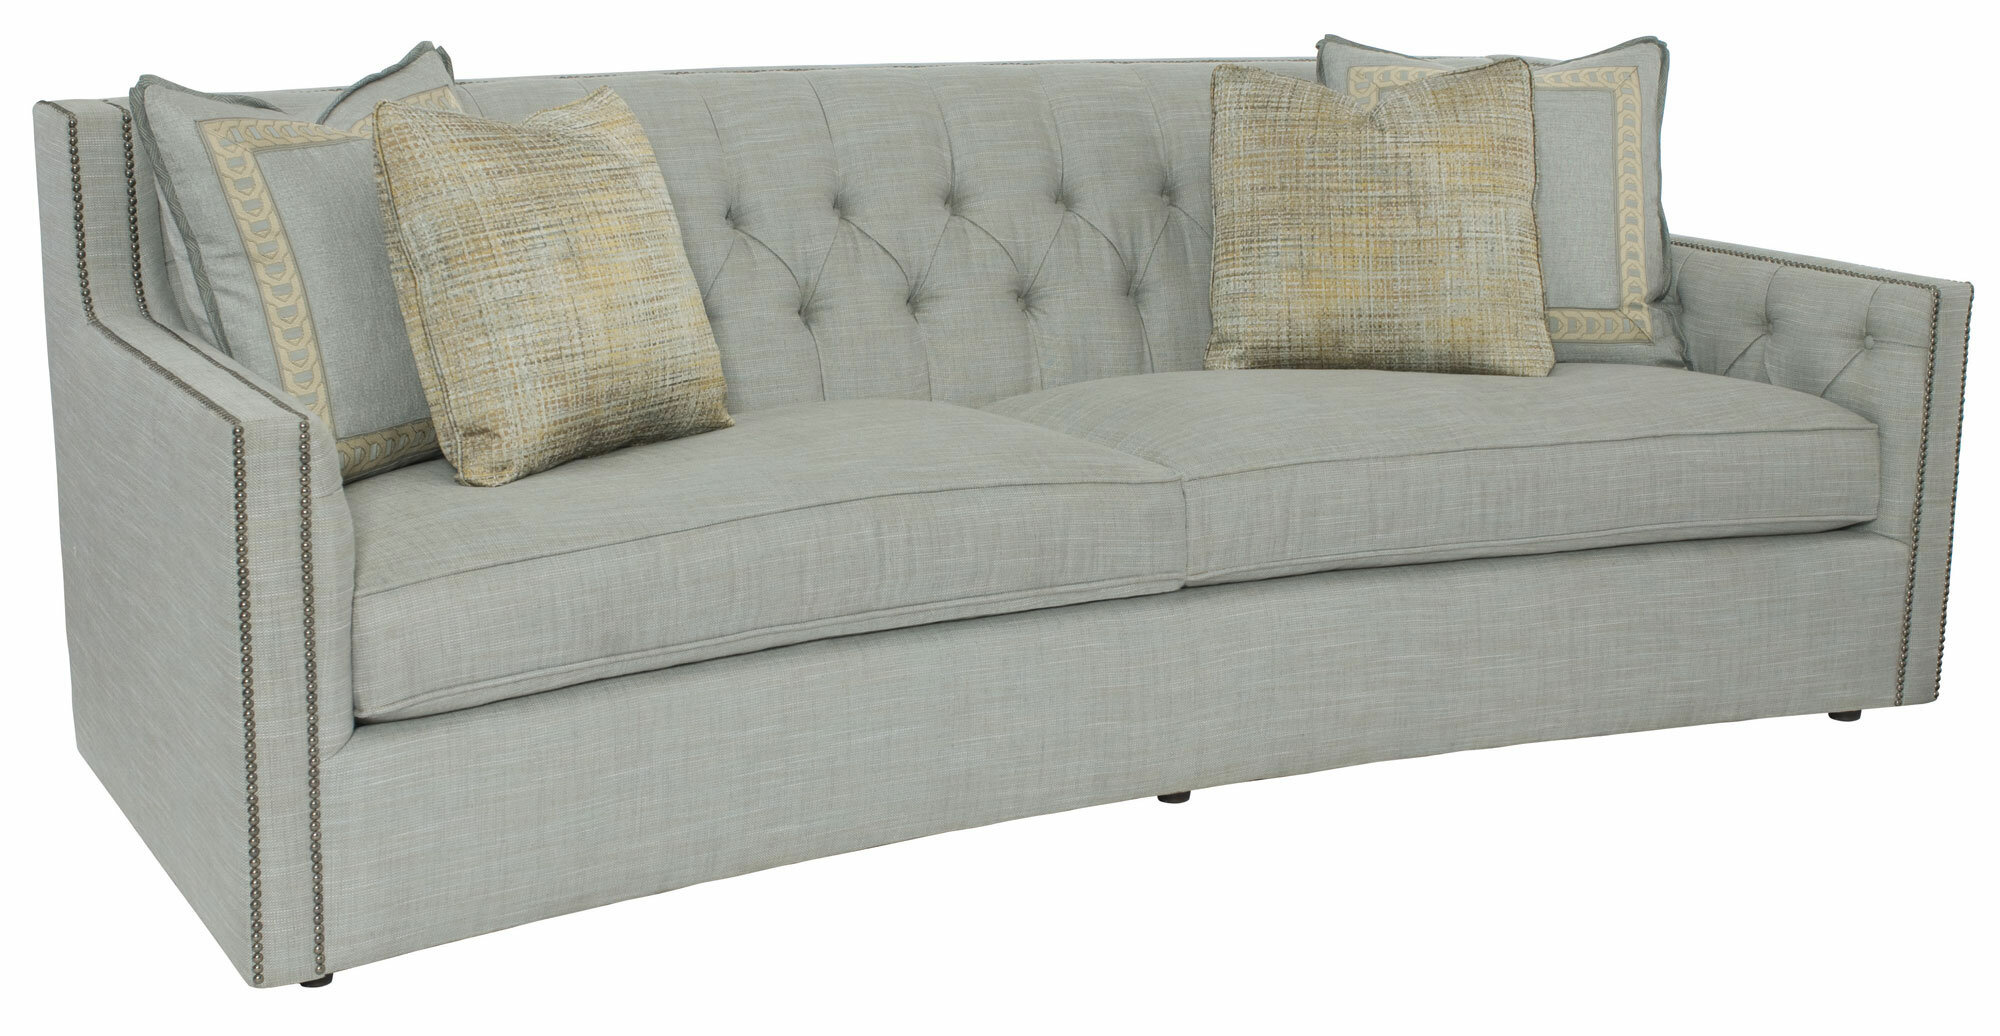 Enjoyable Bernhardt Foster Sofa Wayfair Interior Design Ideas Inesswwsoteloinfo